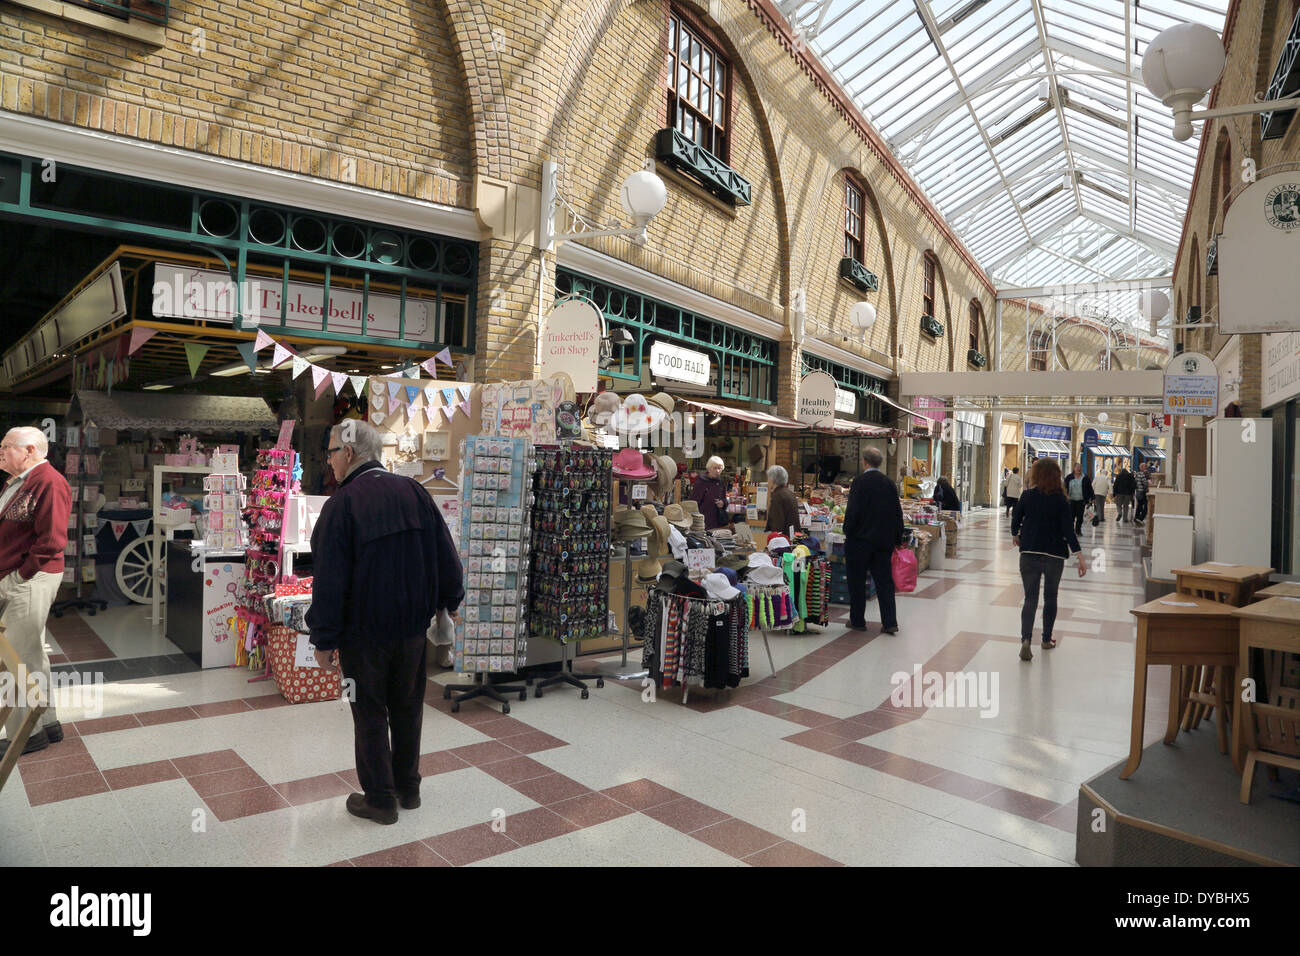 the inside shopping market, The Martlets, in Burgess Hill Stock Photo